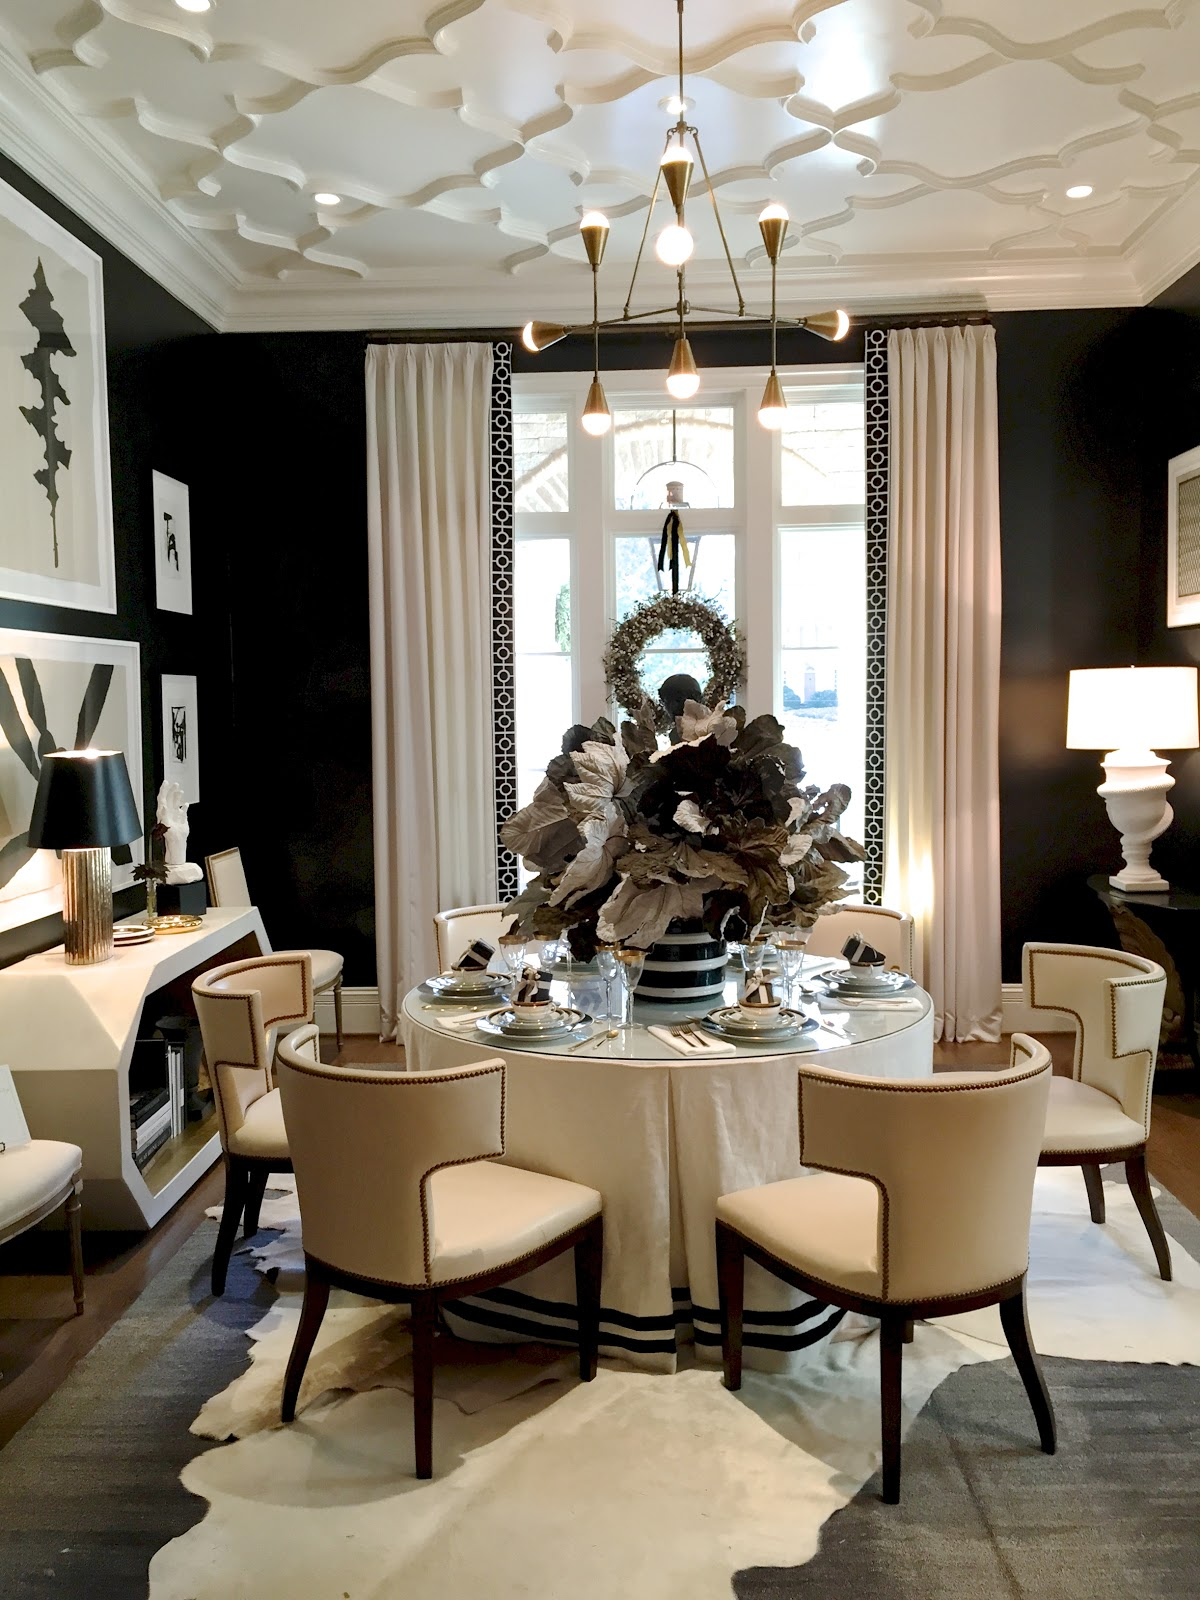 Sophisticated Dining Room Ideas For Your Home Design dining room ideas Sophisticated Dining Room Ideas For Your Home Design IMG 5889